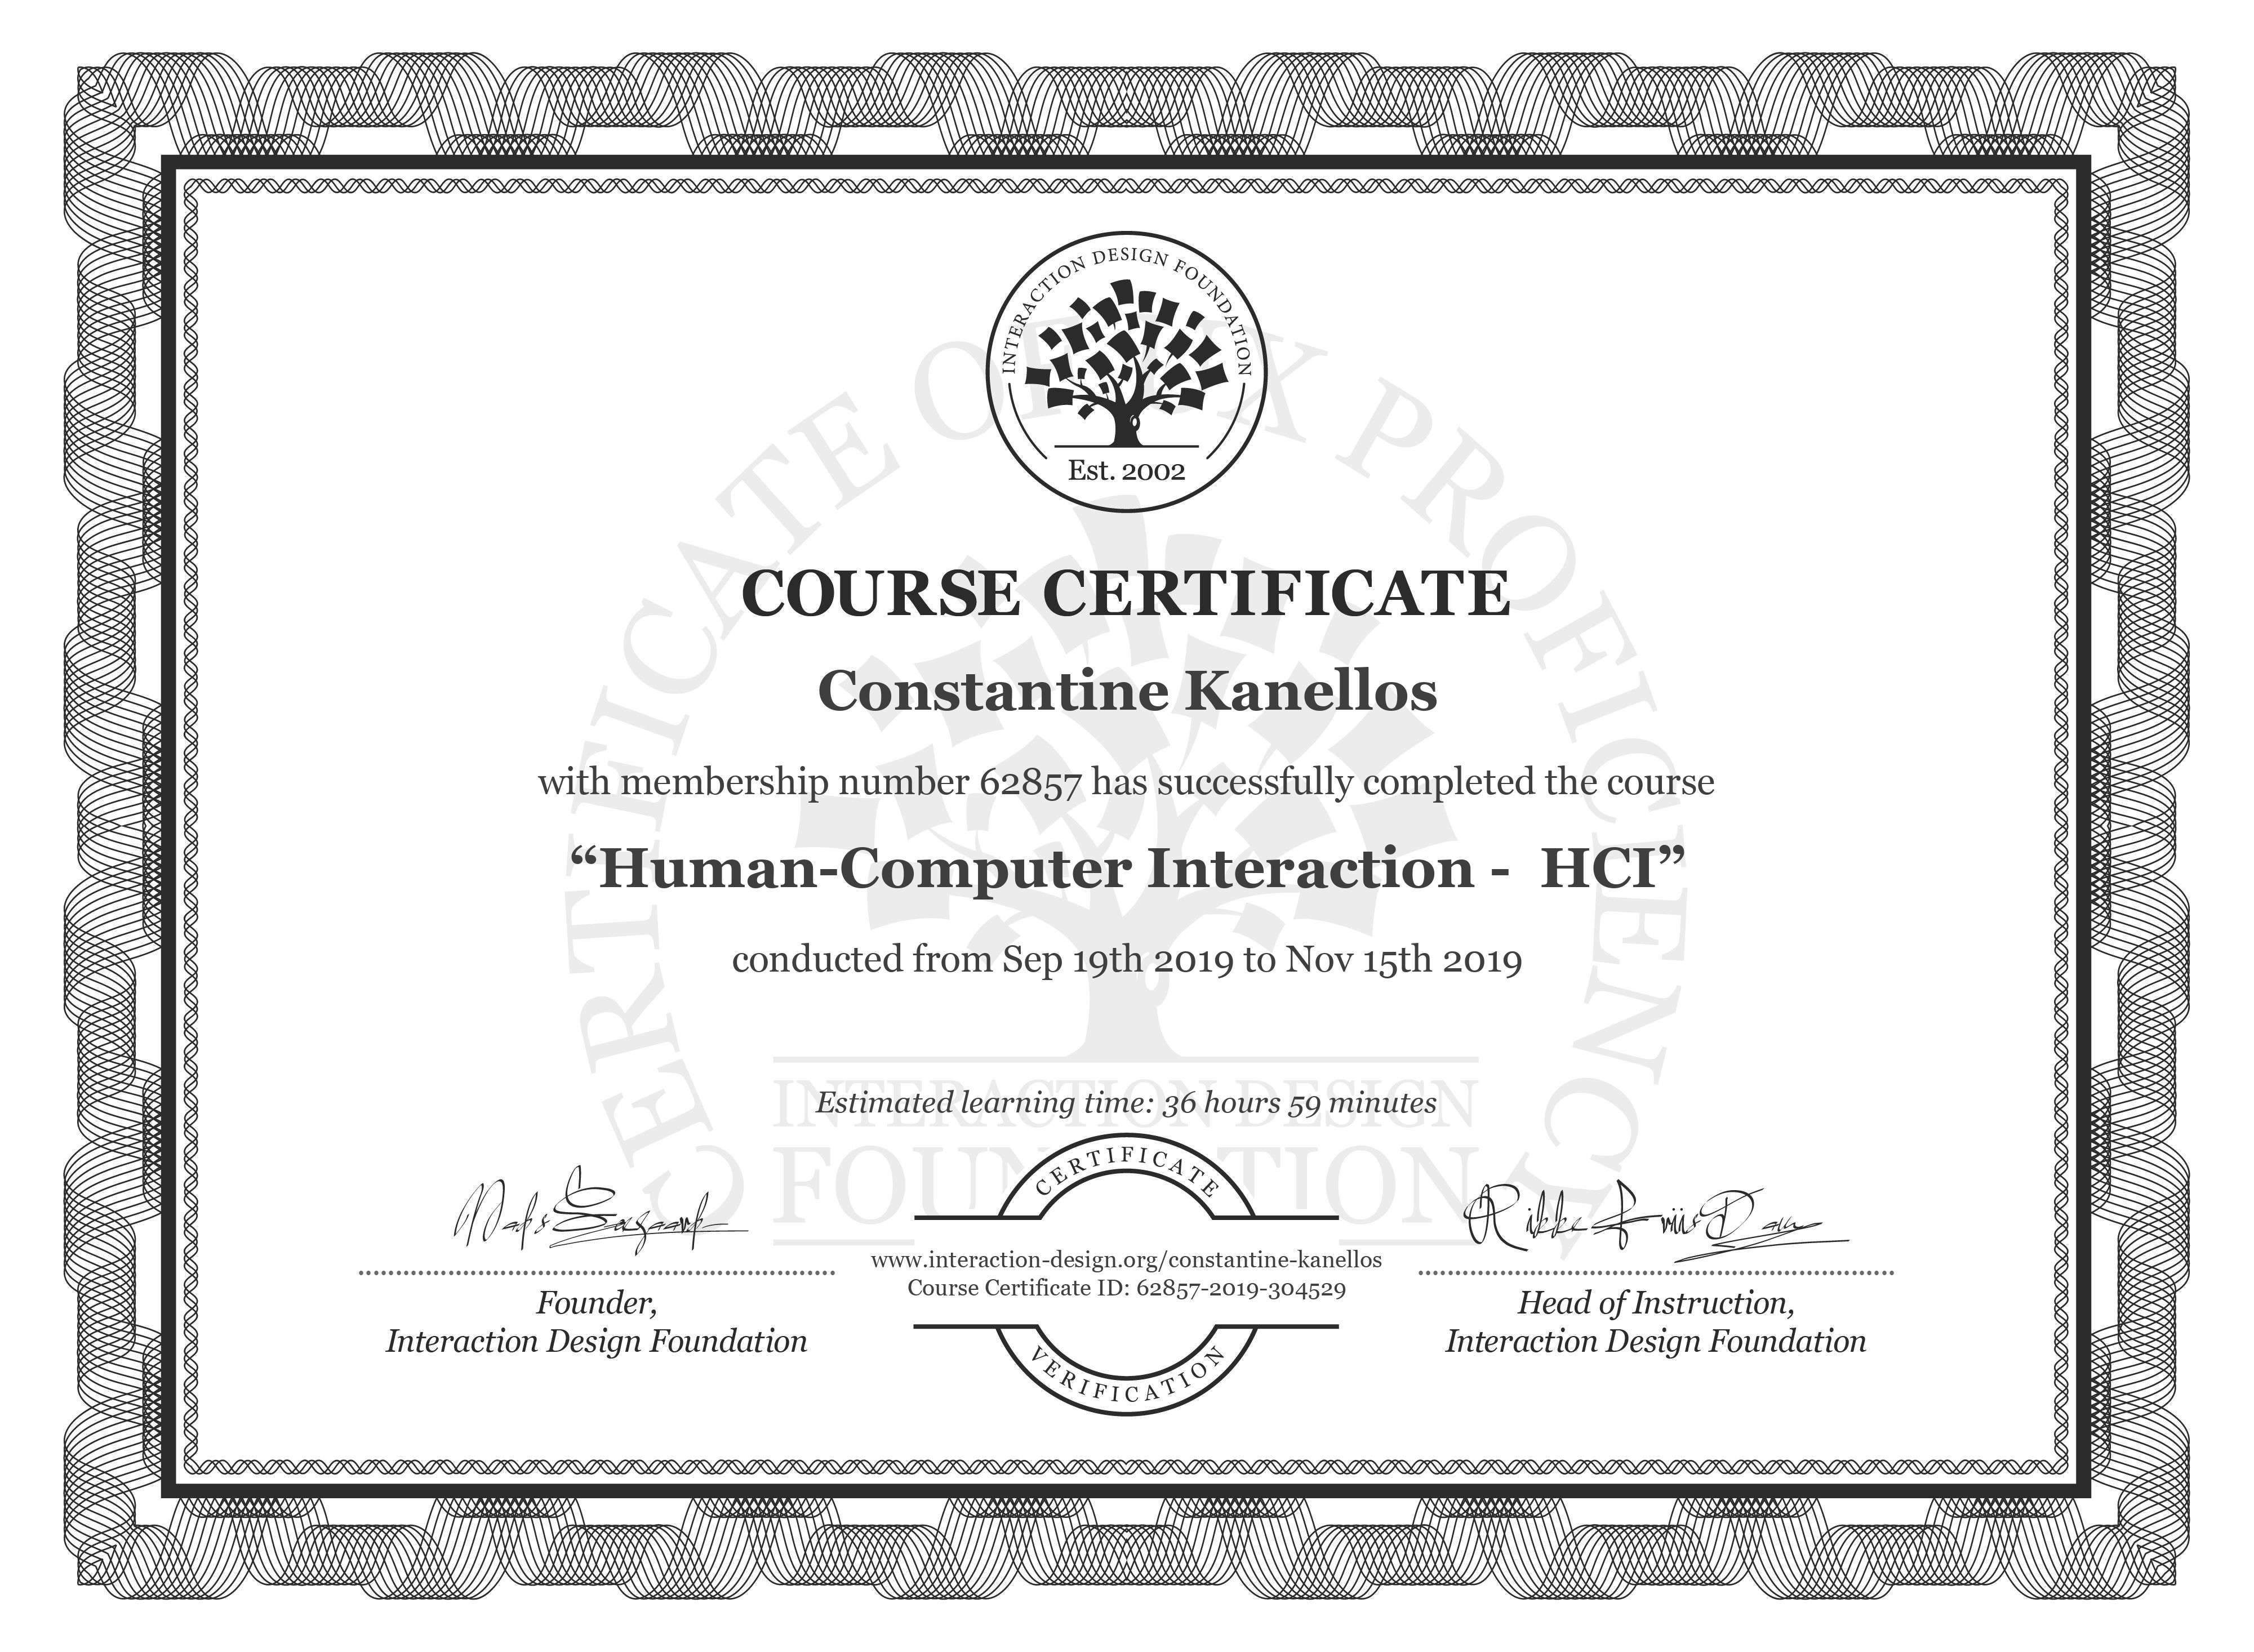 Constantine Kanellos's Course Certificate: Human-Computer Interaction -  HCI